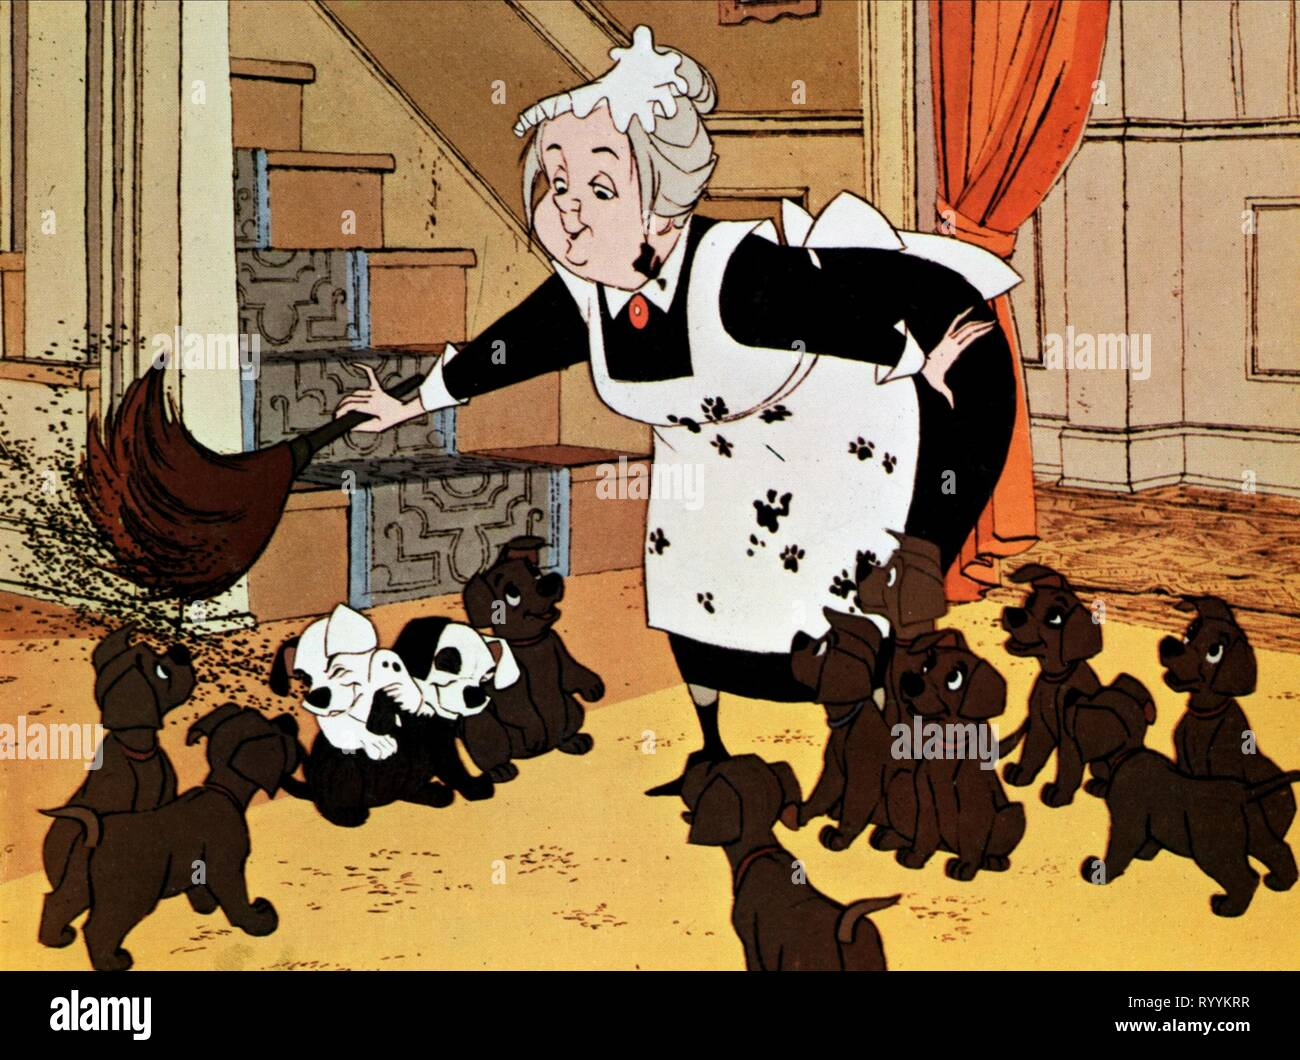 Nanny Dalmatians One Hundred And One Dalmatians 1961 Stock Photo Alamy